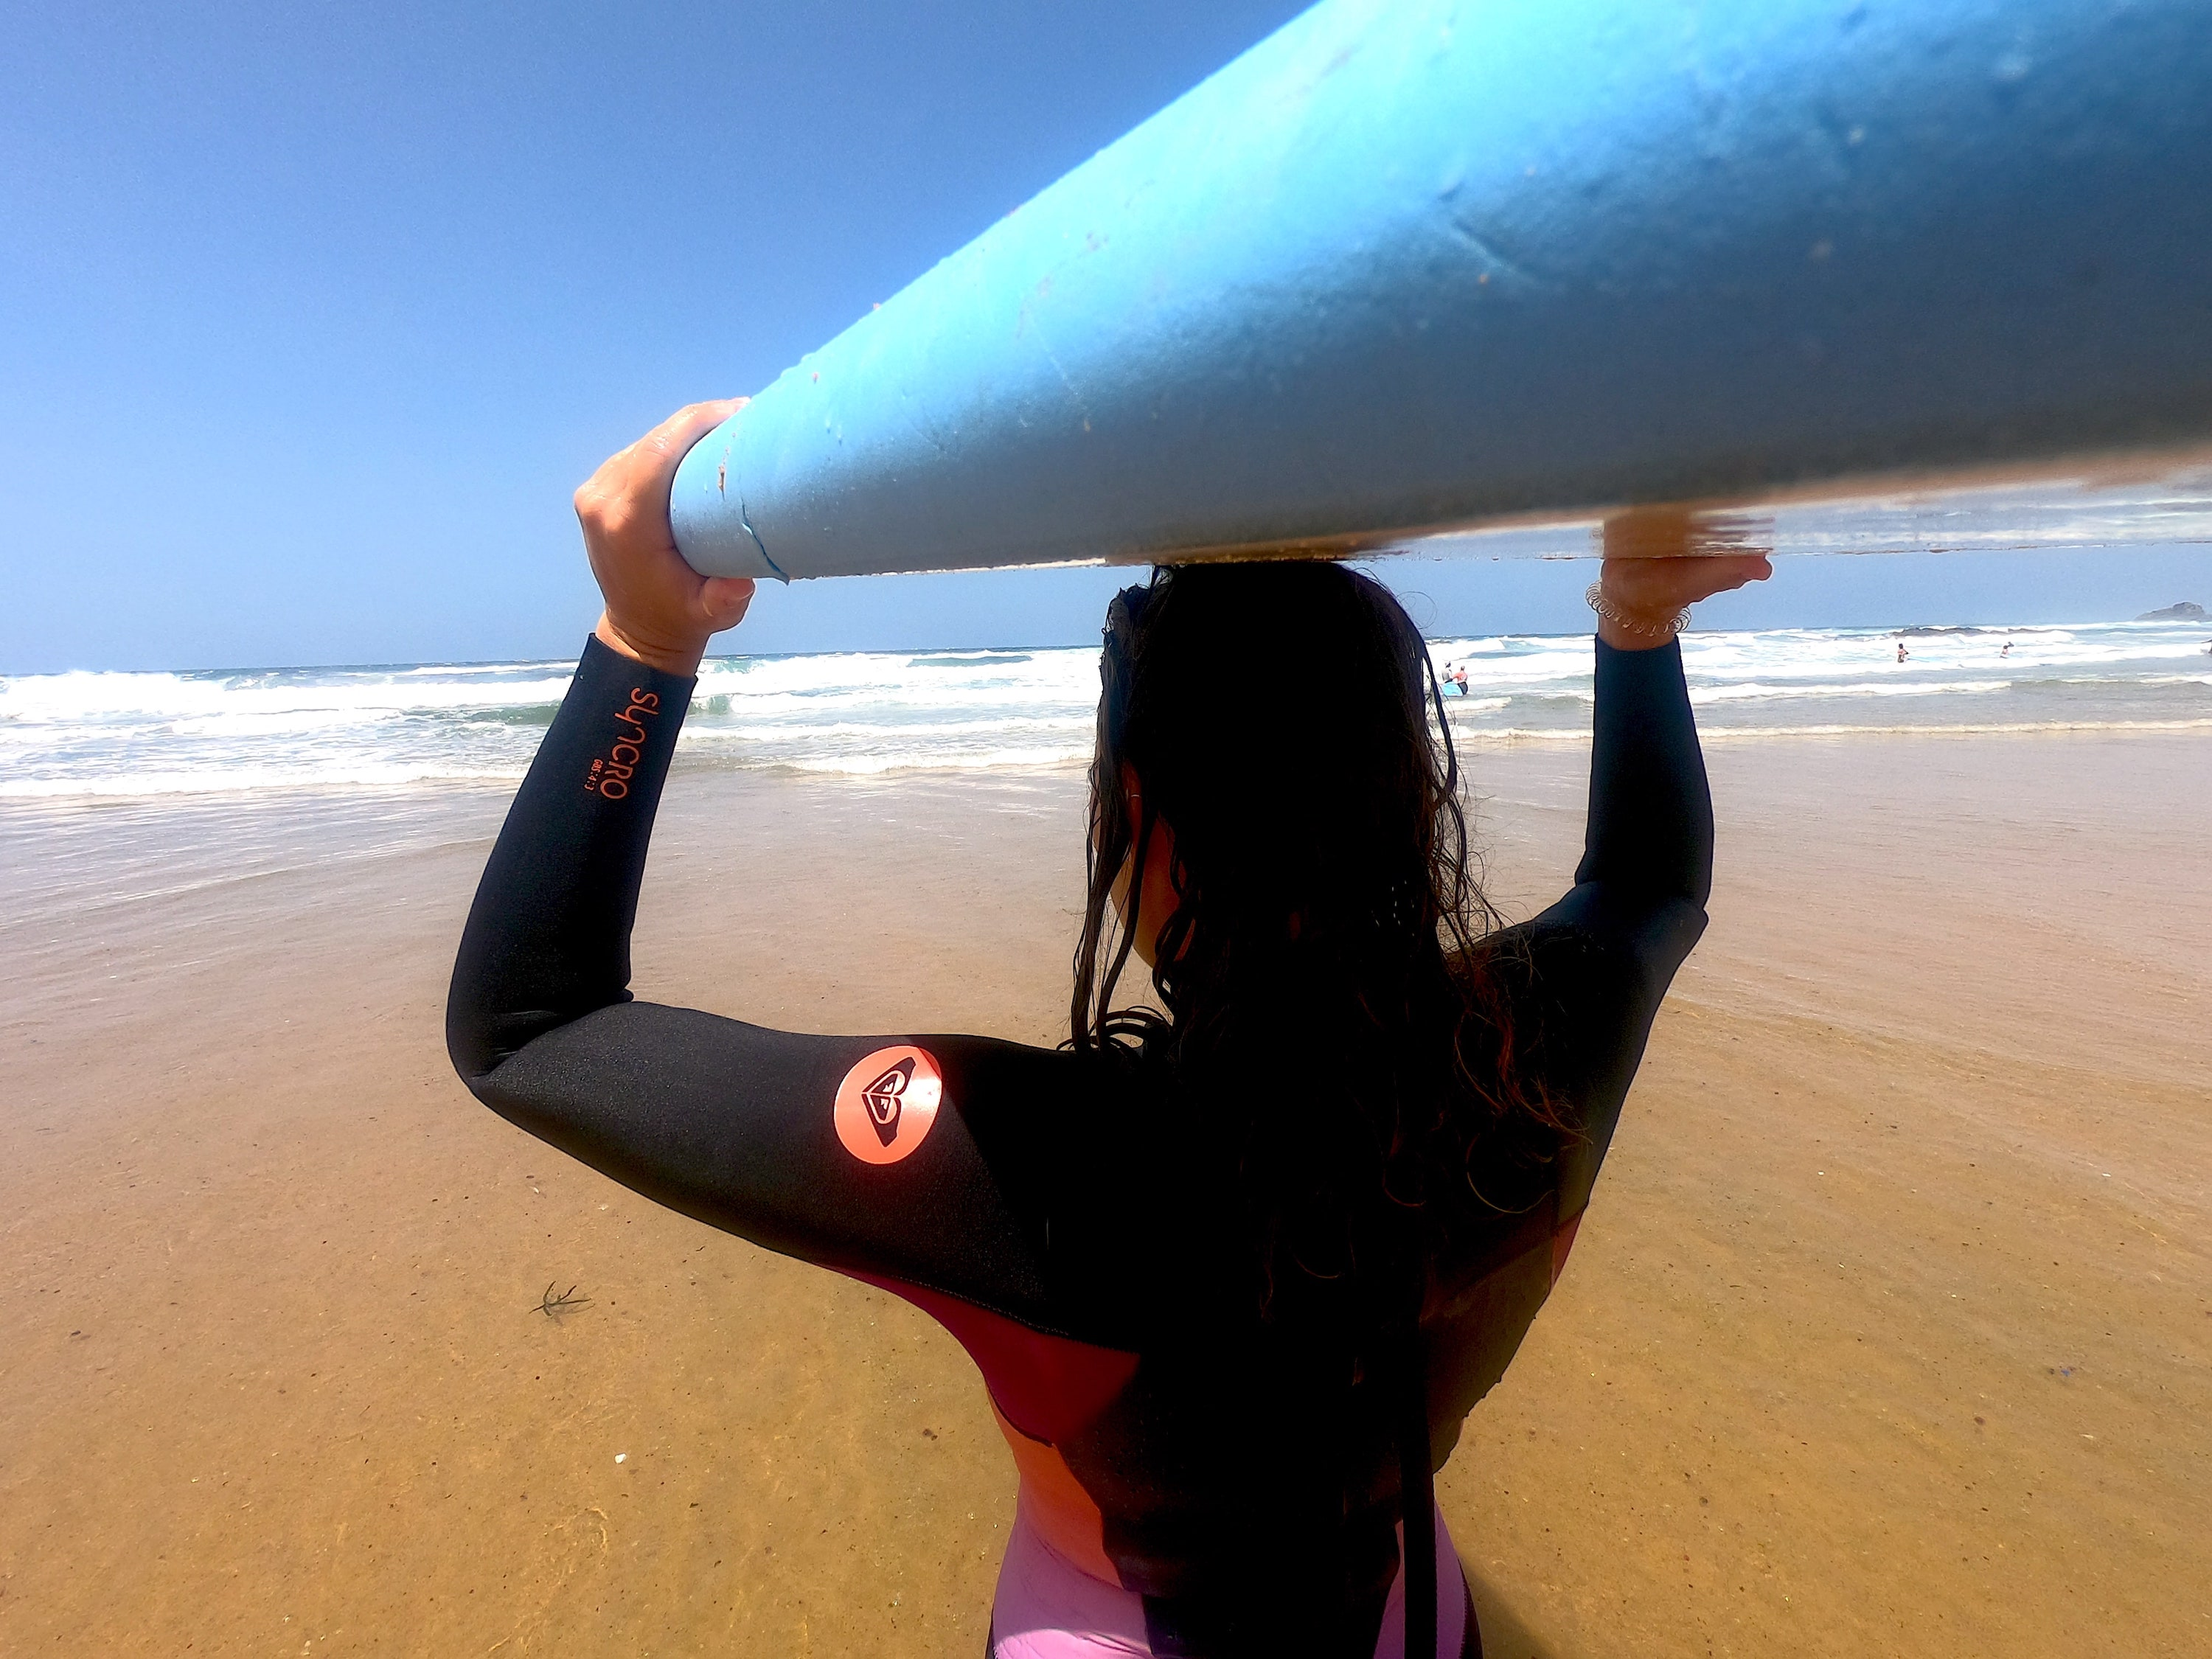 Surfing in the Algarve, Surfboard